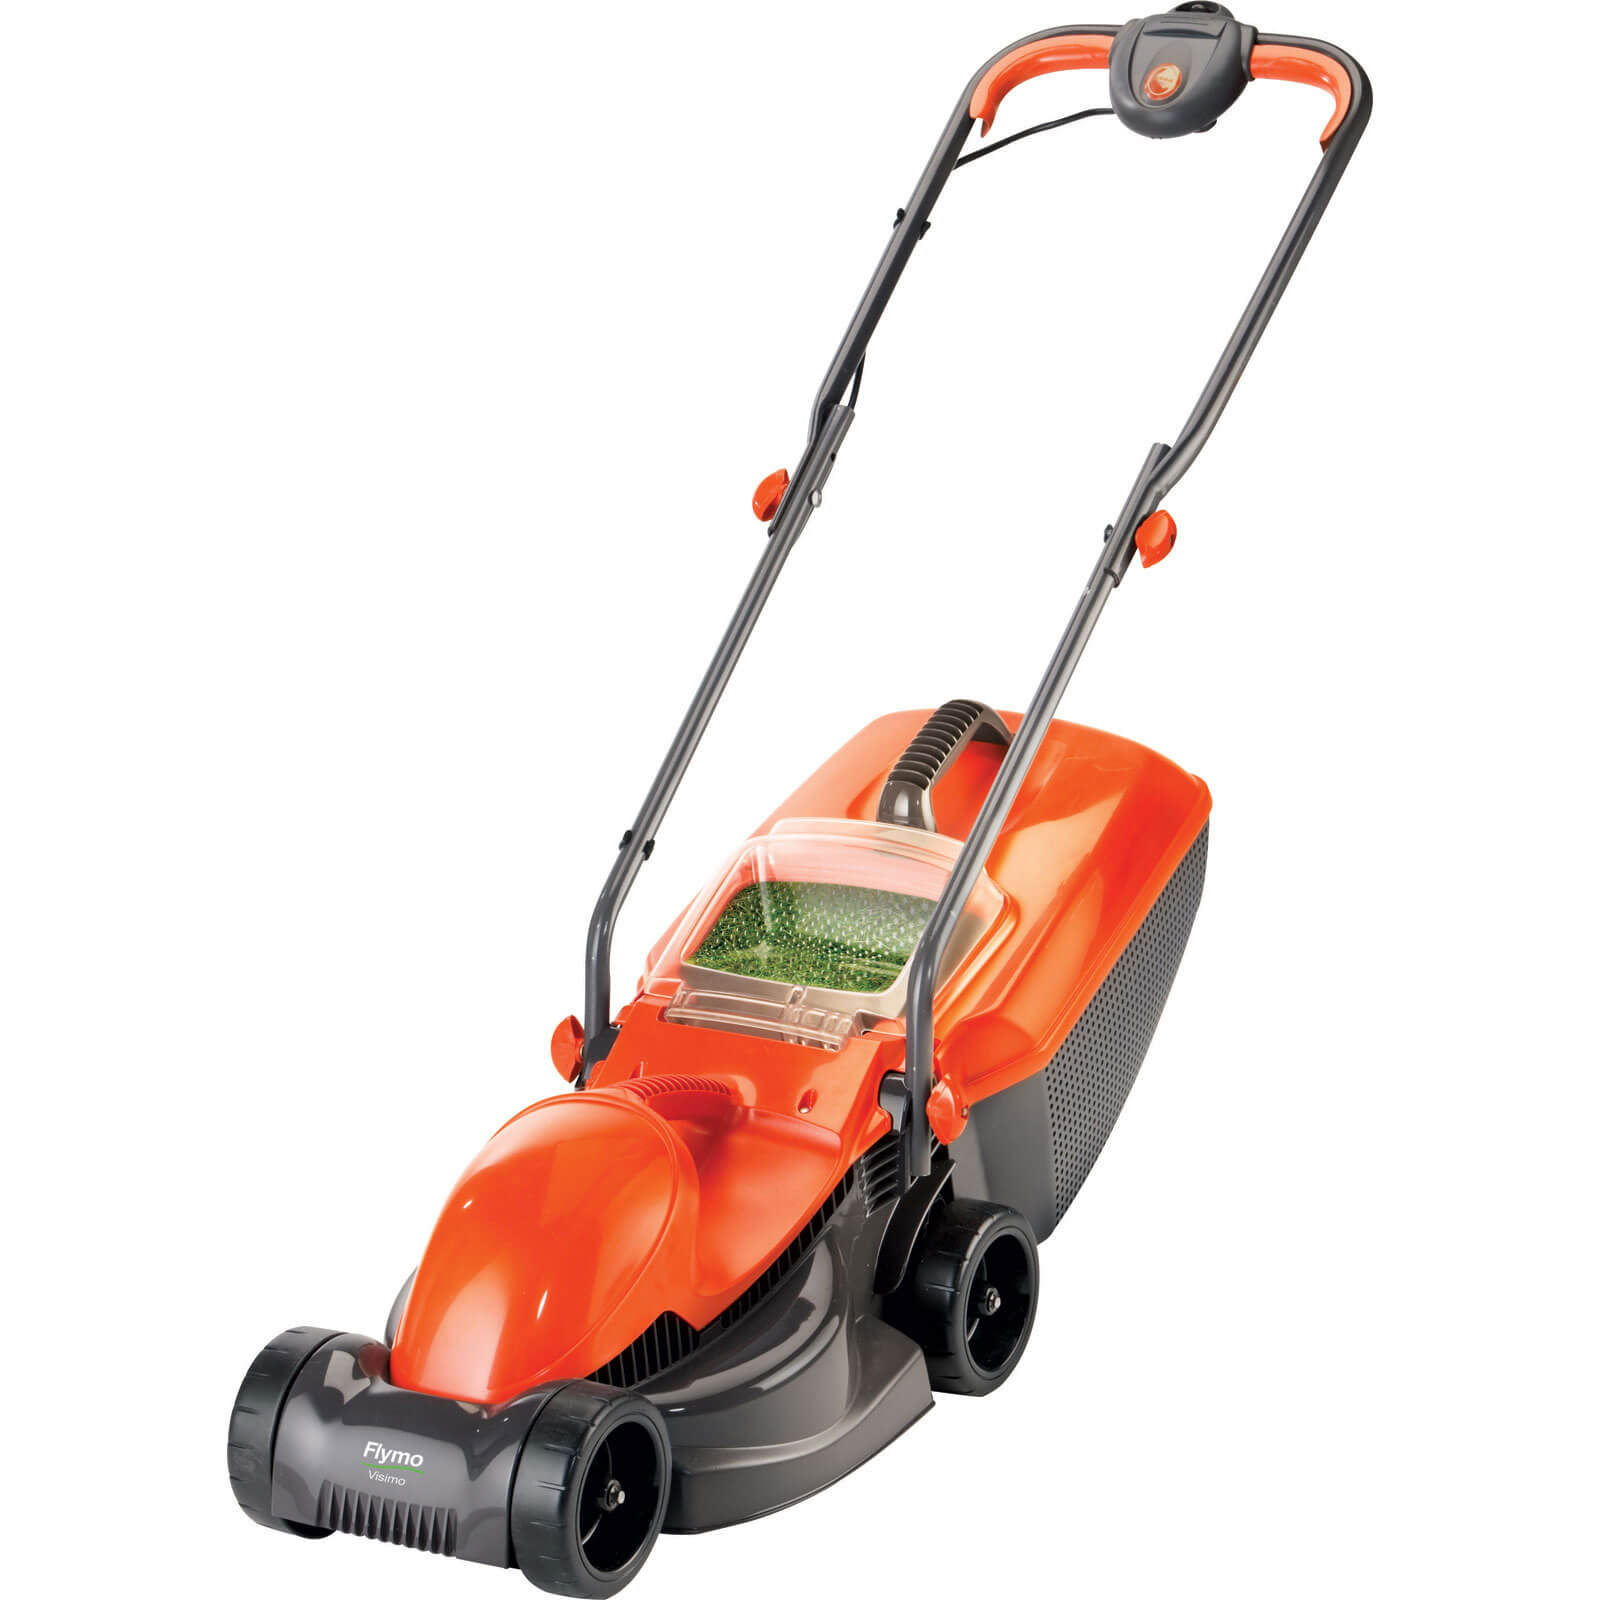 Image of Flymo VISIMO Rotary Lawnmower 320mm 240v